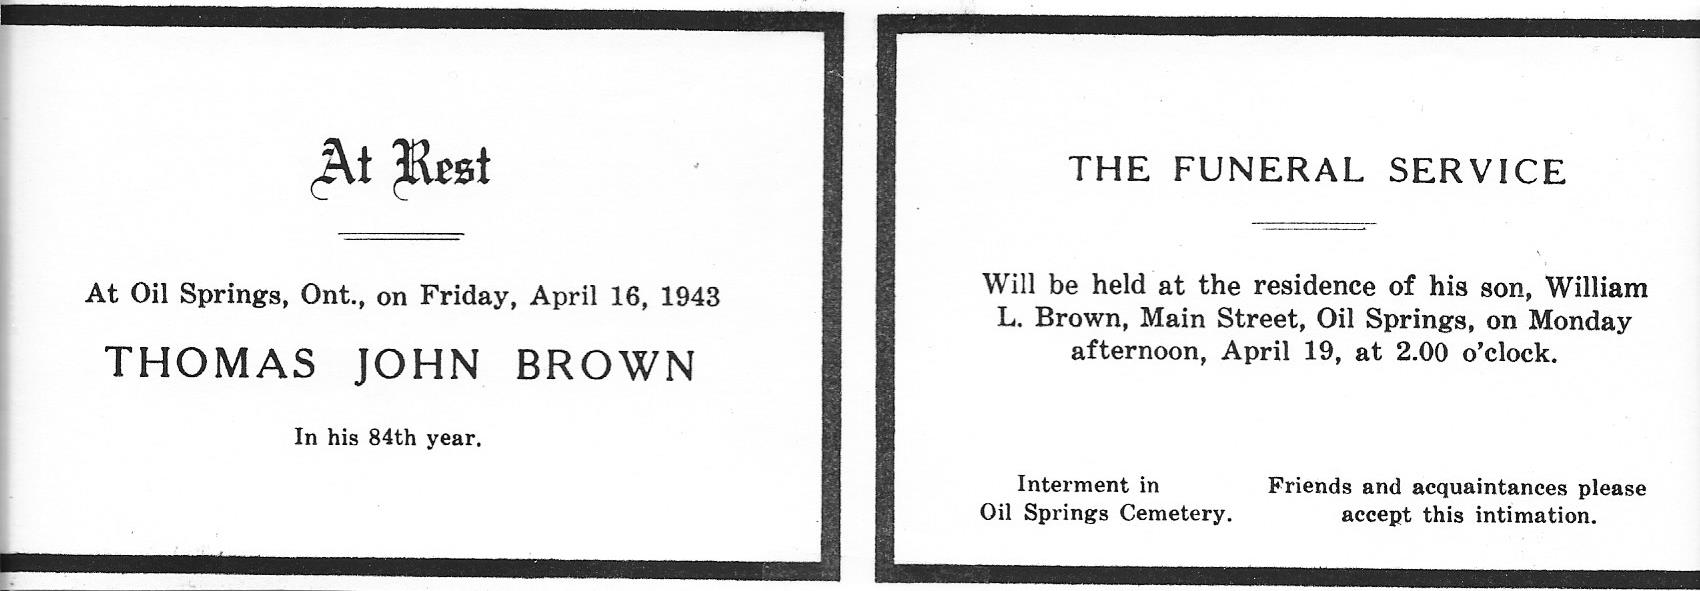 Thomas John Brown